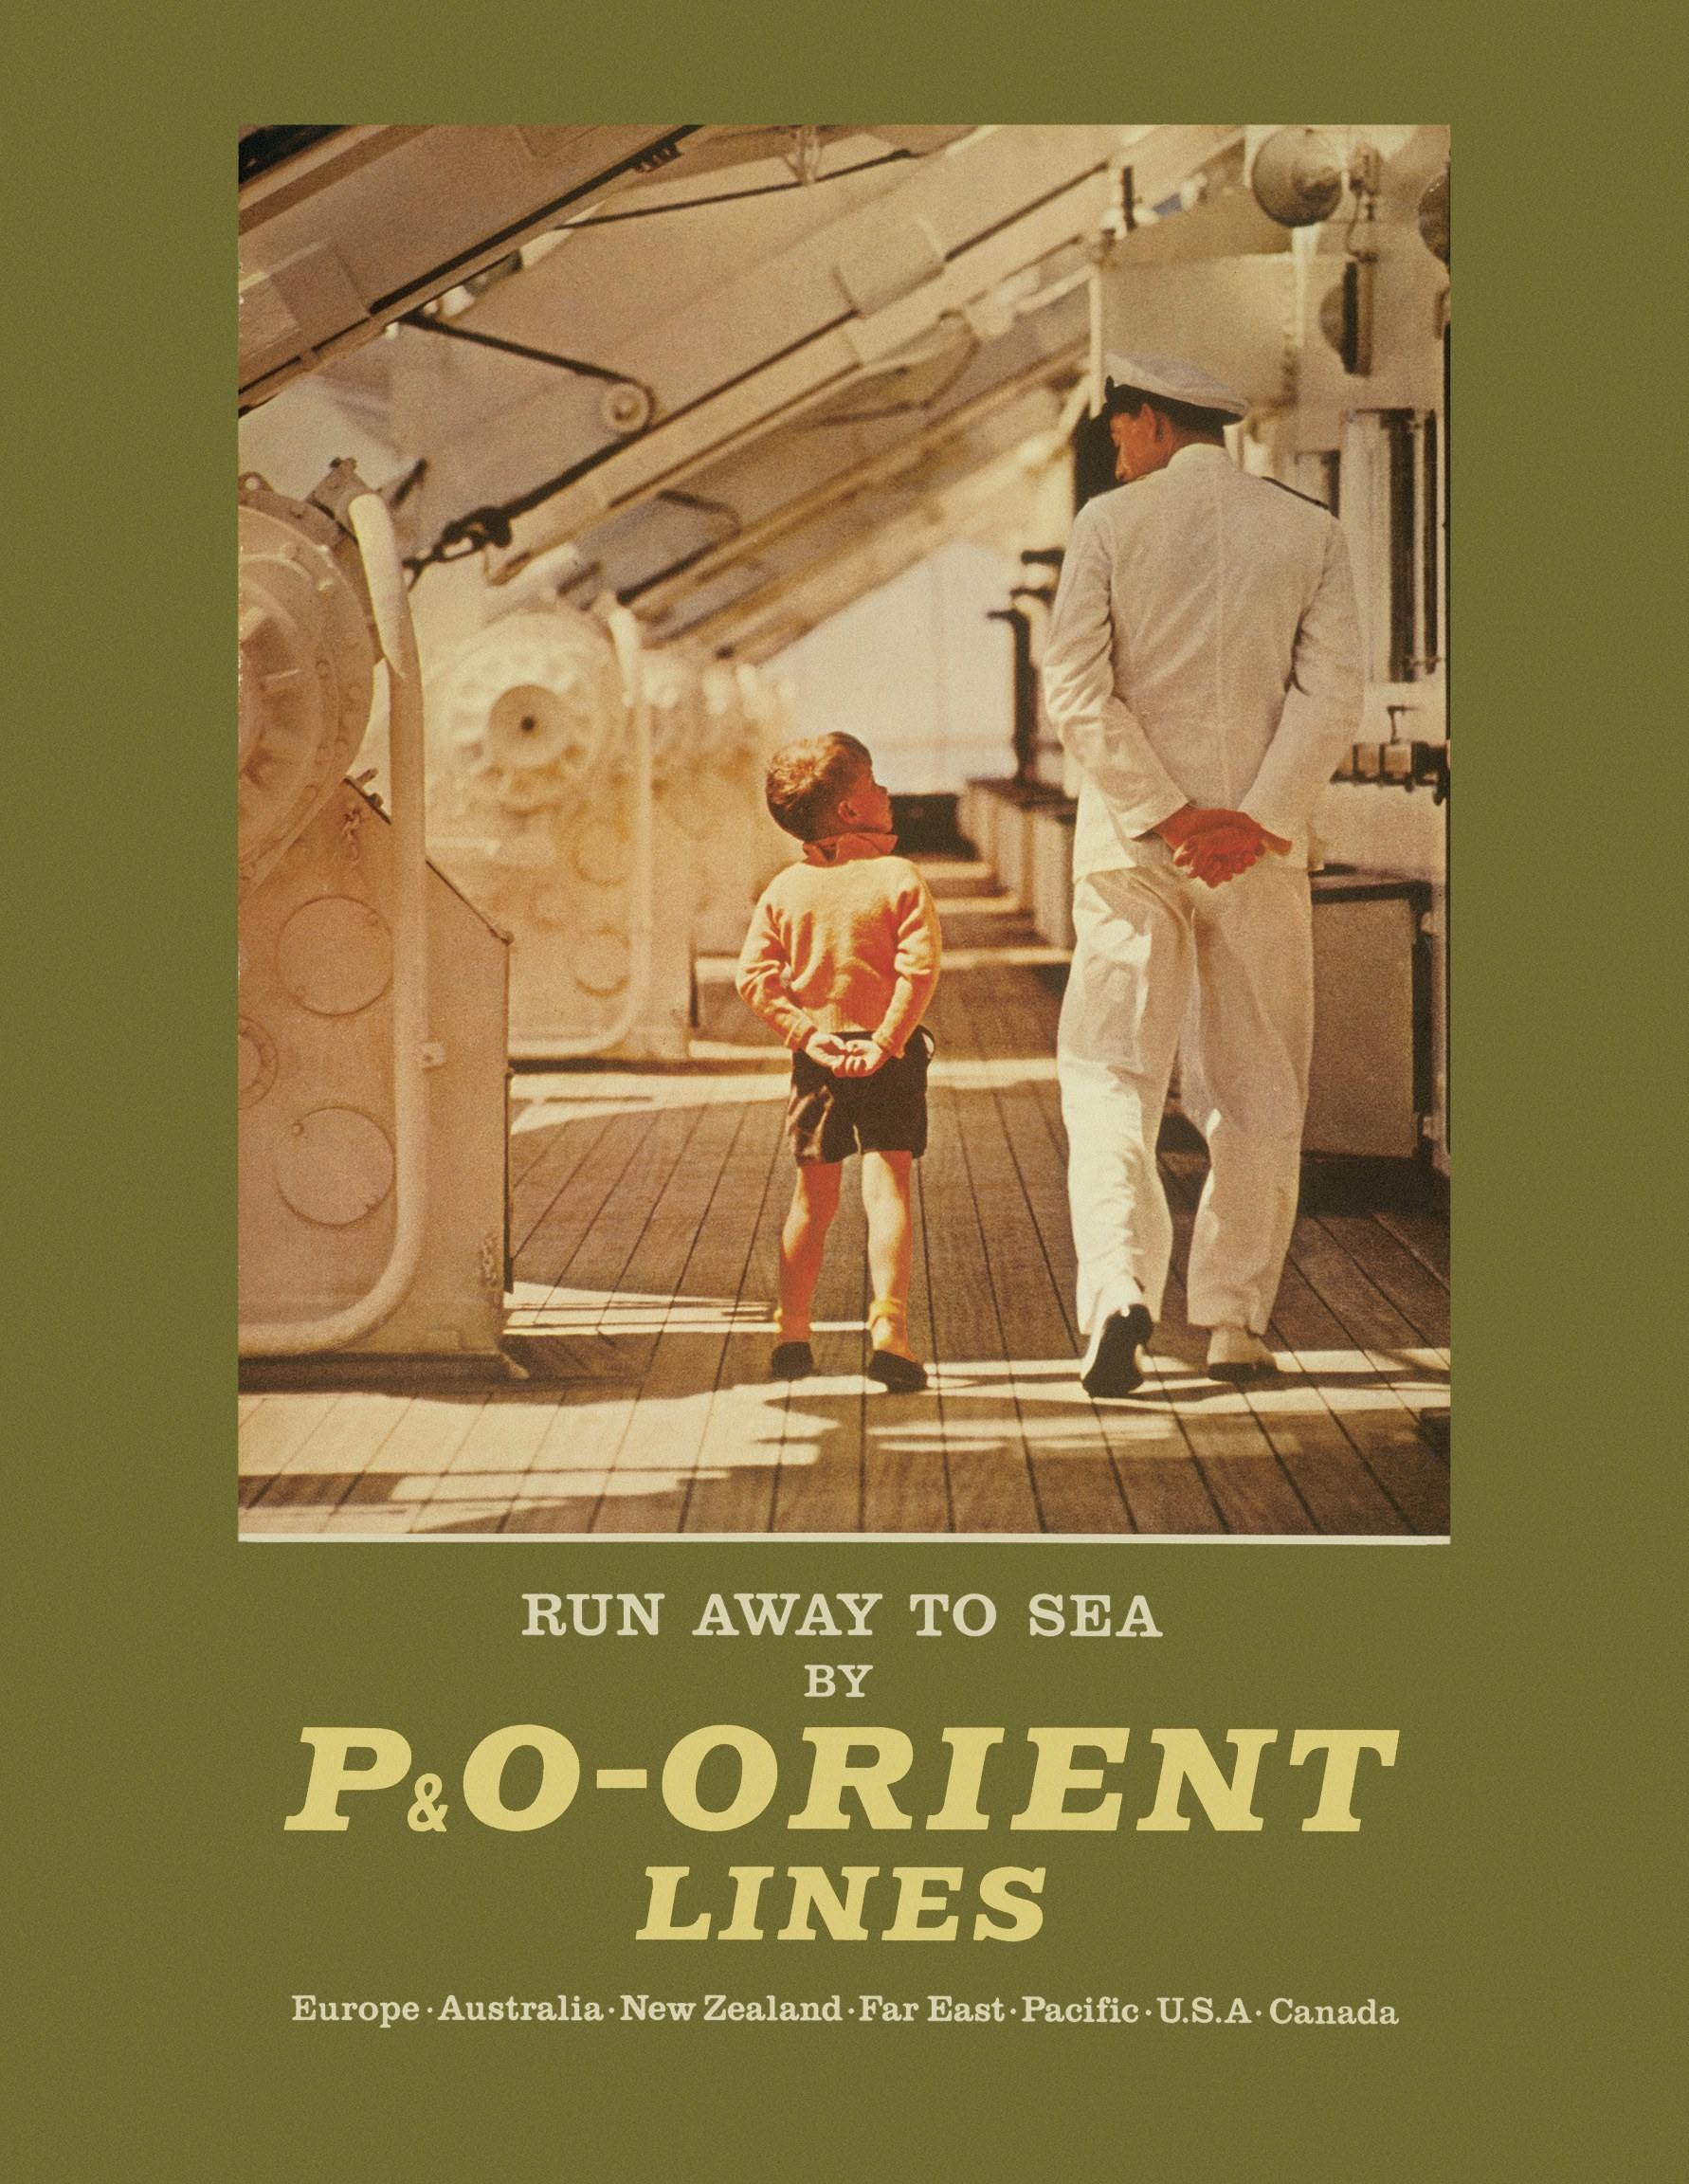 poster for P&O-Orient Line, photographed on board Oronsay, reprinted c.1961